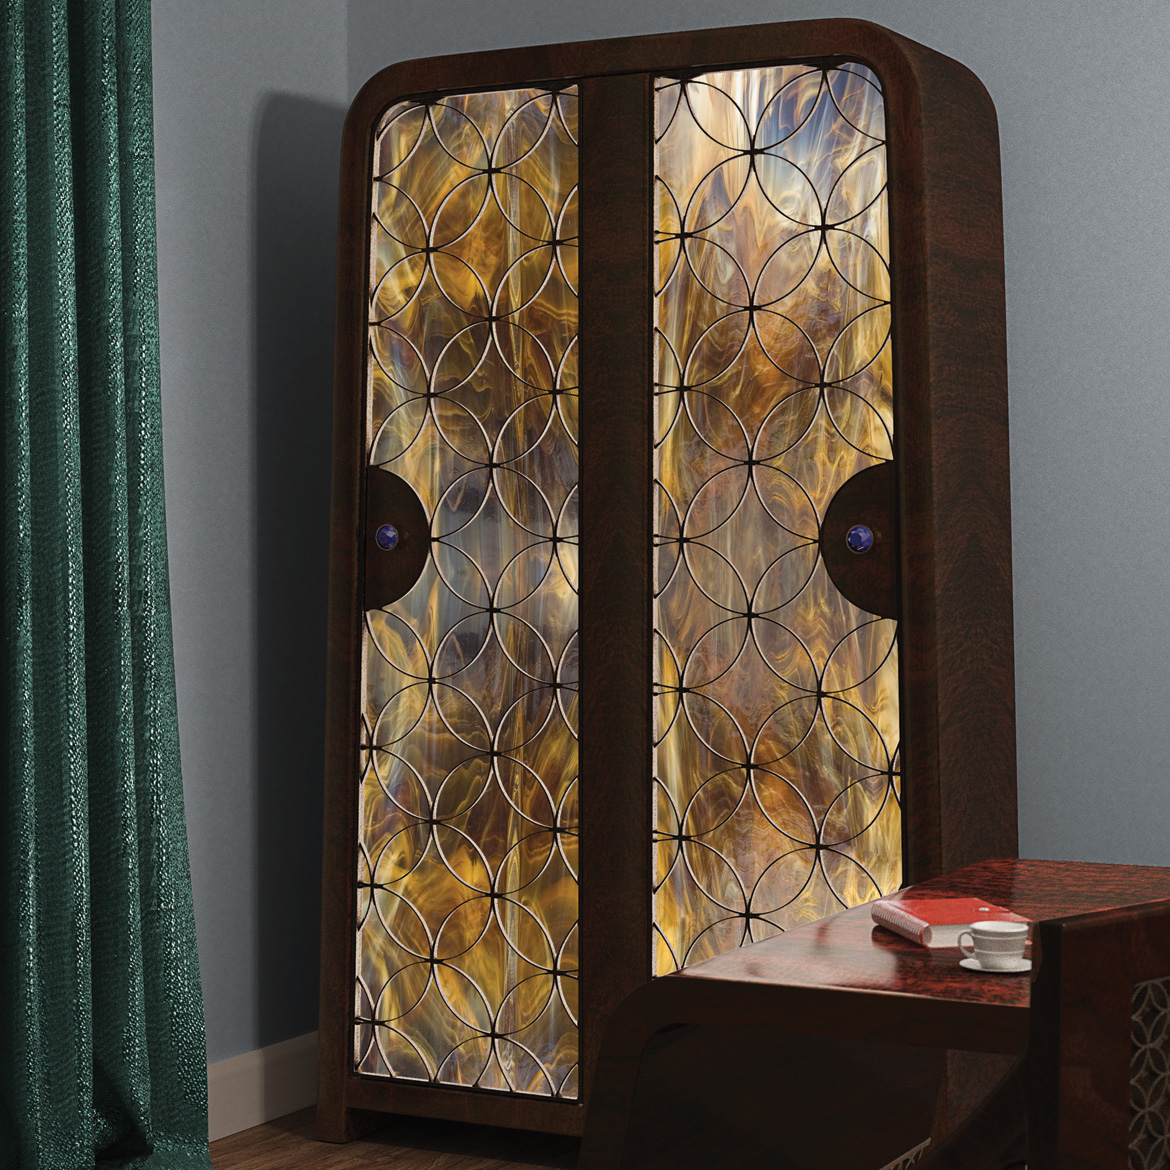 Marrakech Classic wardrobe with LEDs